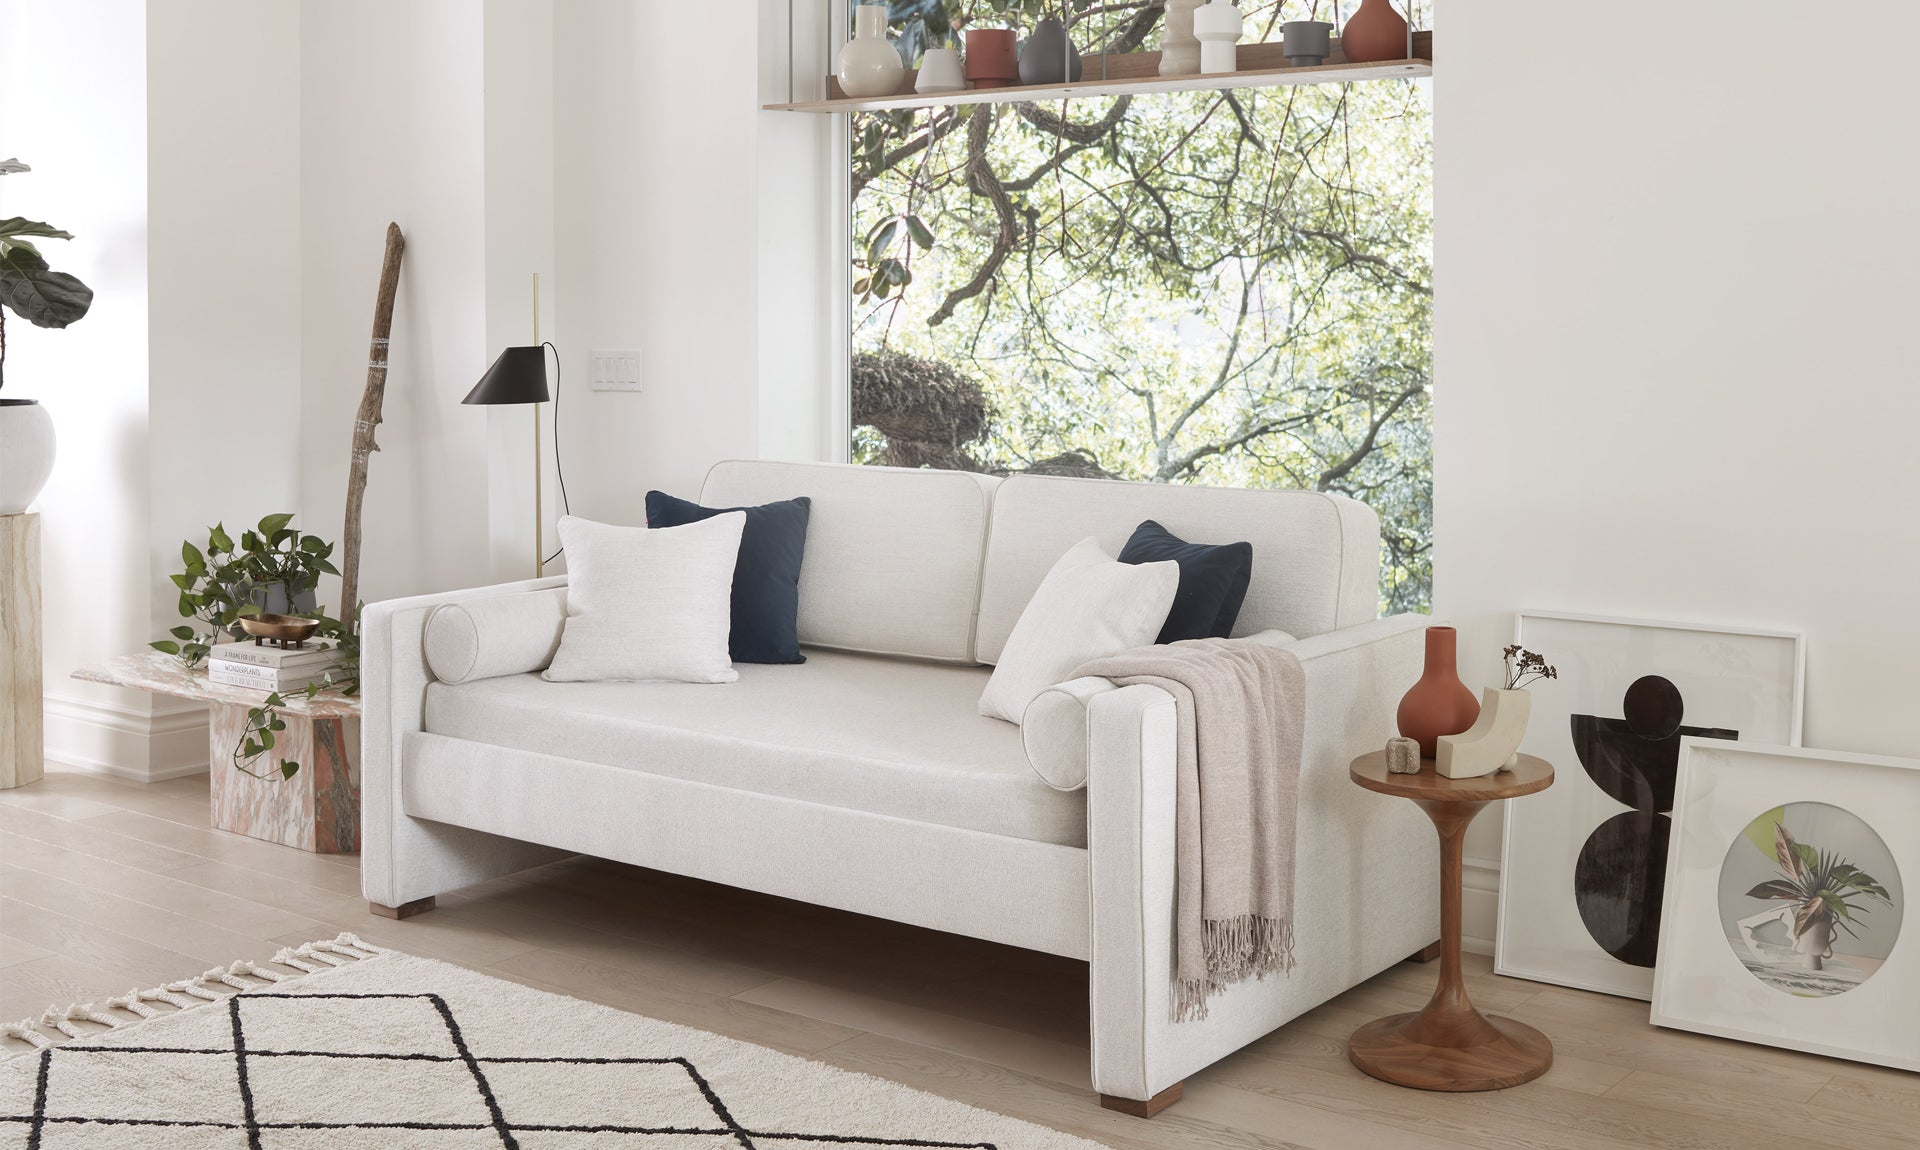 Dorma Daybed Sofa Sleeper